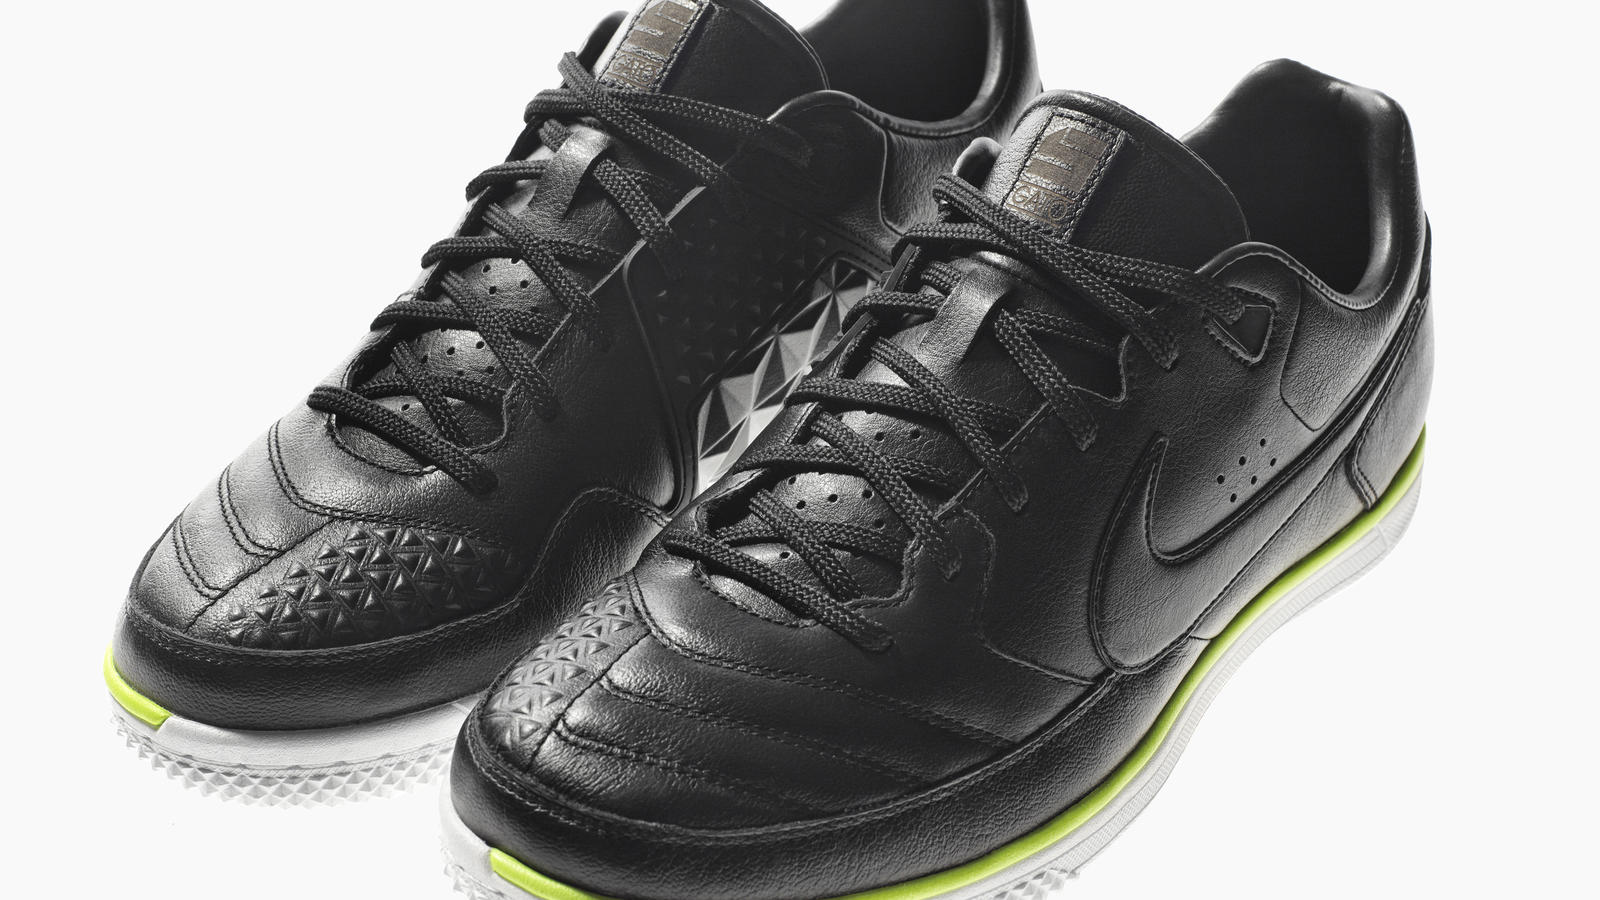 How To Shrink Nike Shoes